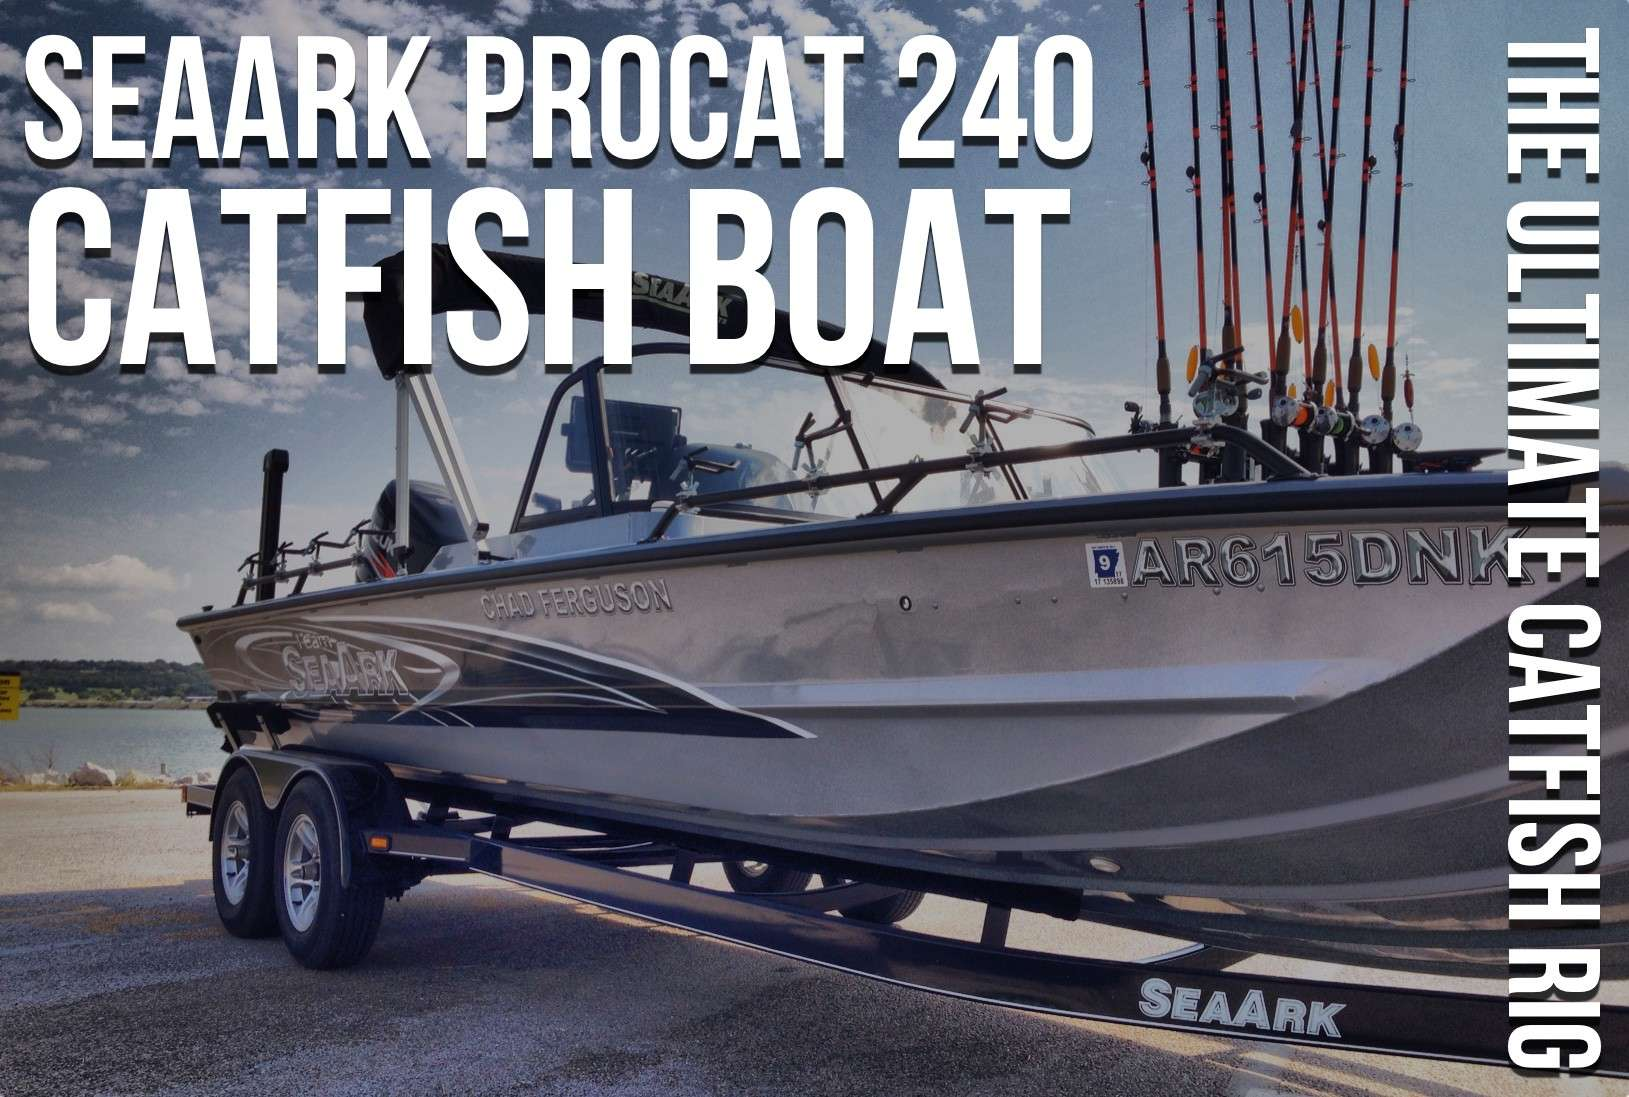 in july of 2014 i joined the seaark boats pro staff  i sold my boat when  the summer channel catfish action slowed down towards the end of the summer  and i